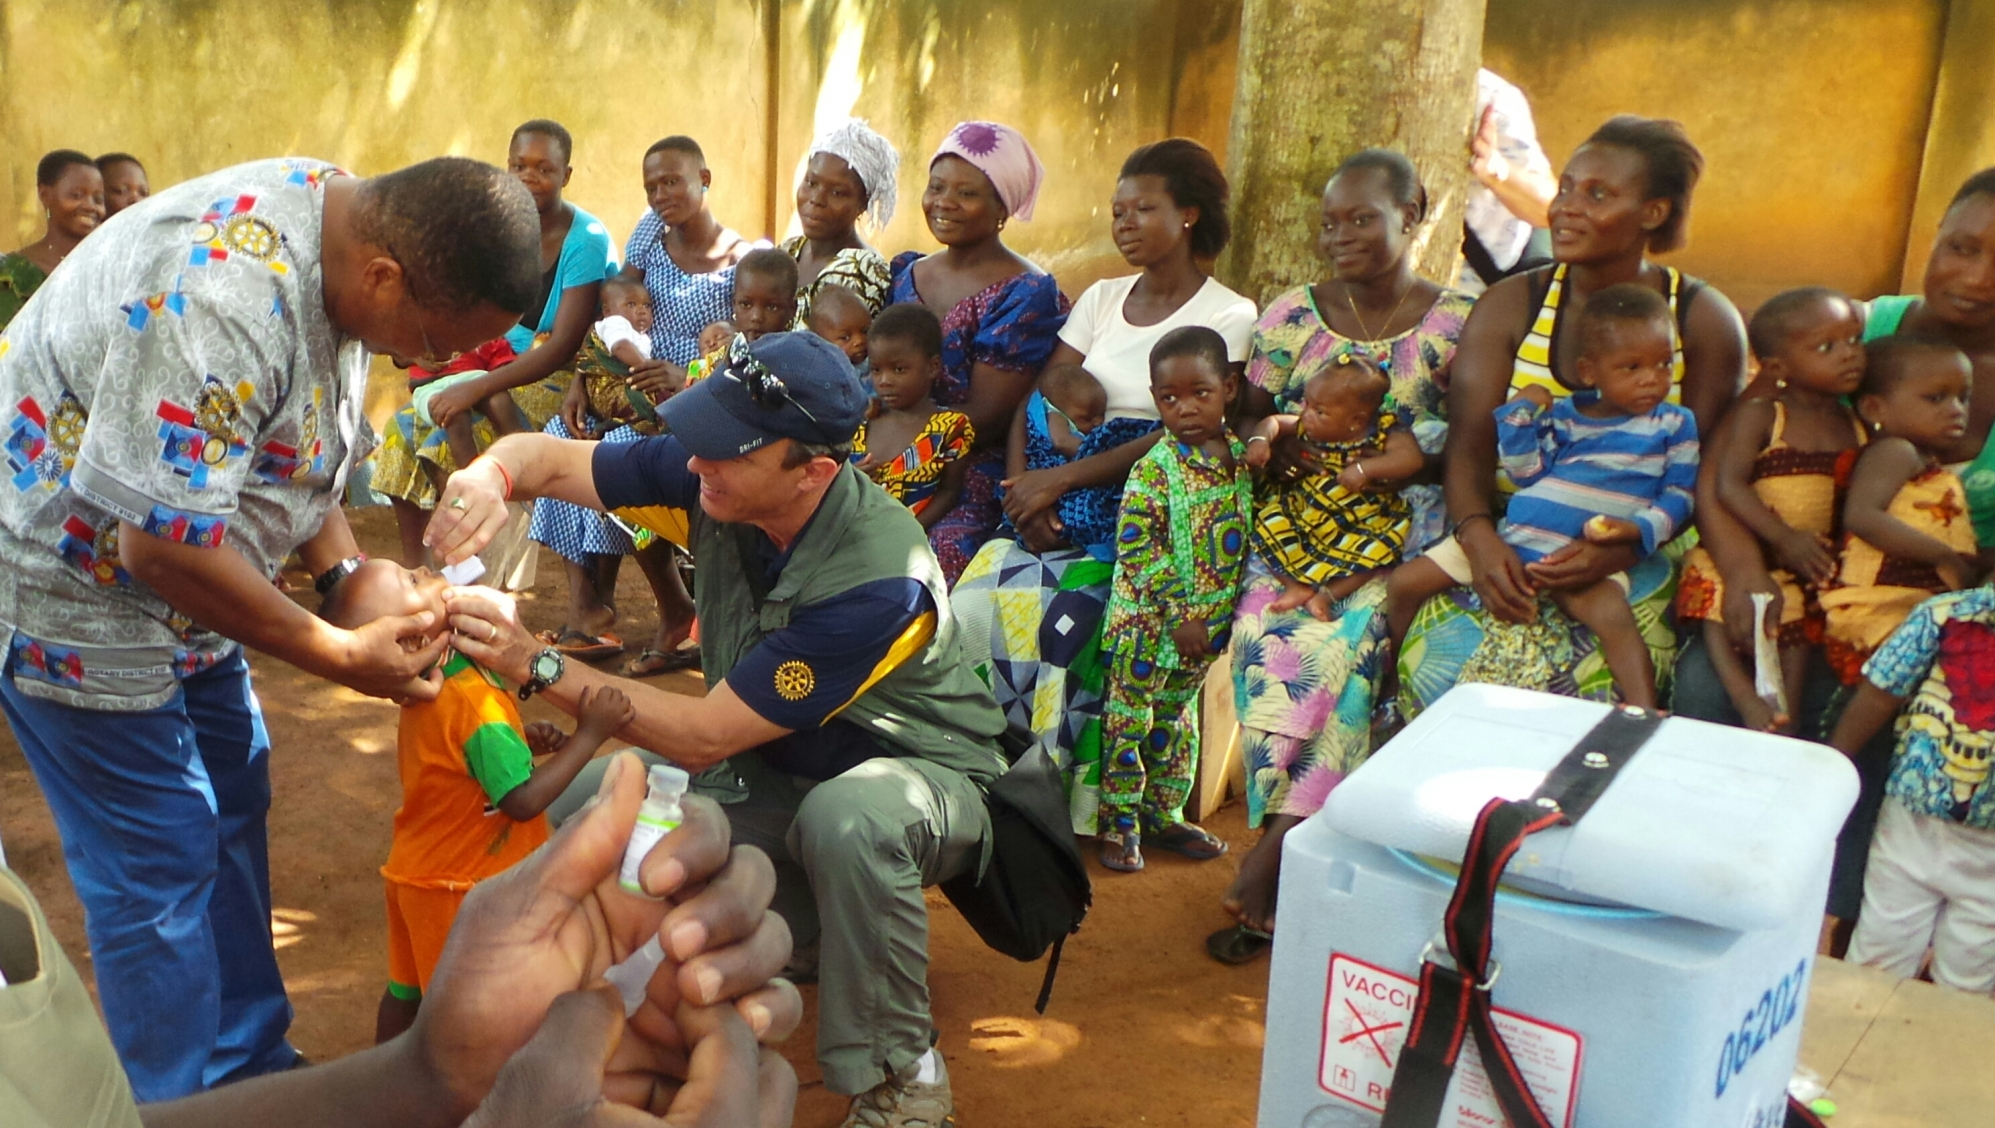 West Africa Project Fair attendees assist with polio immunization in Bagja